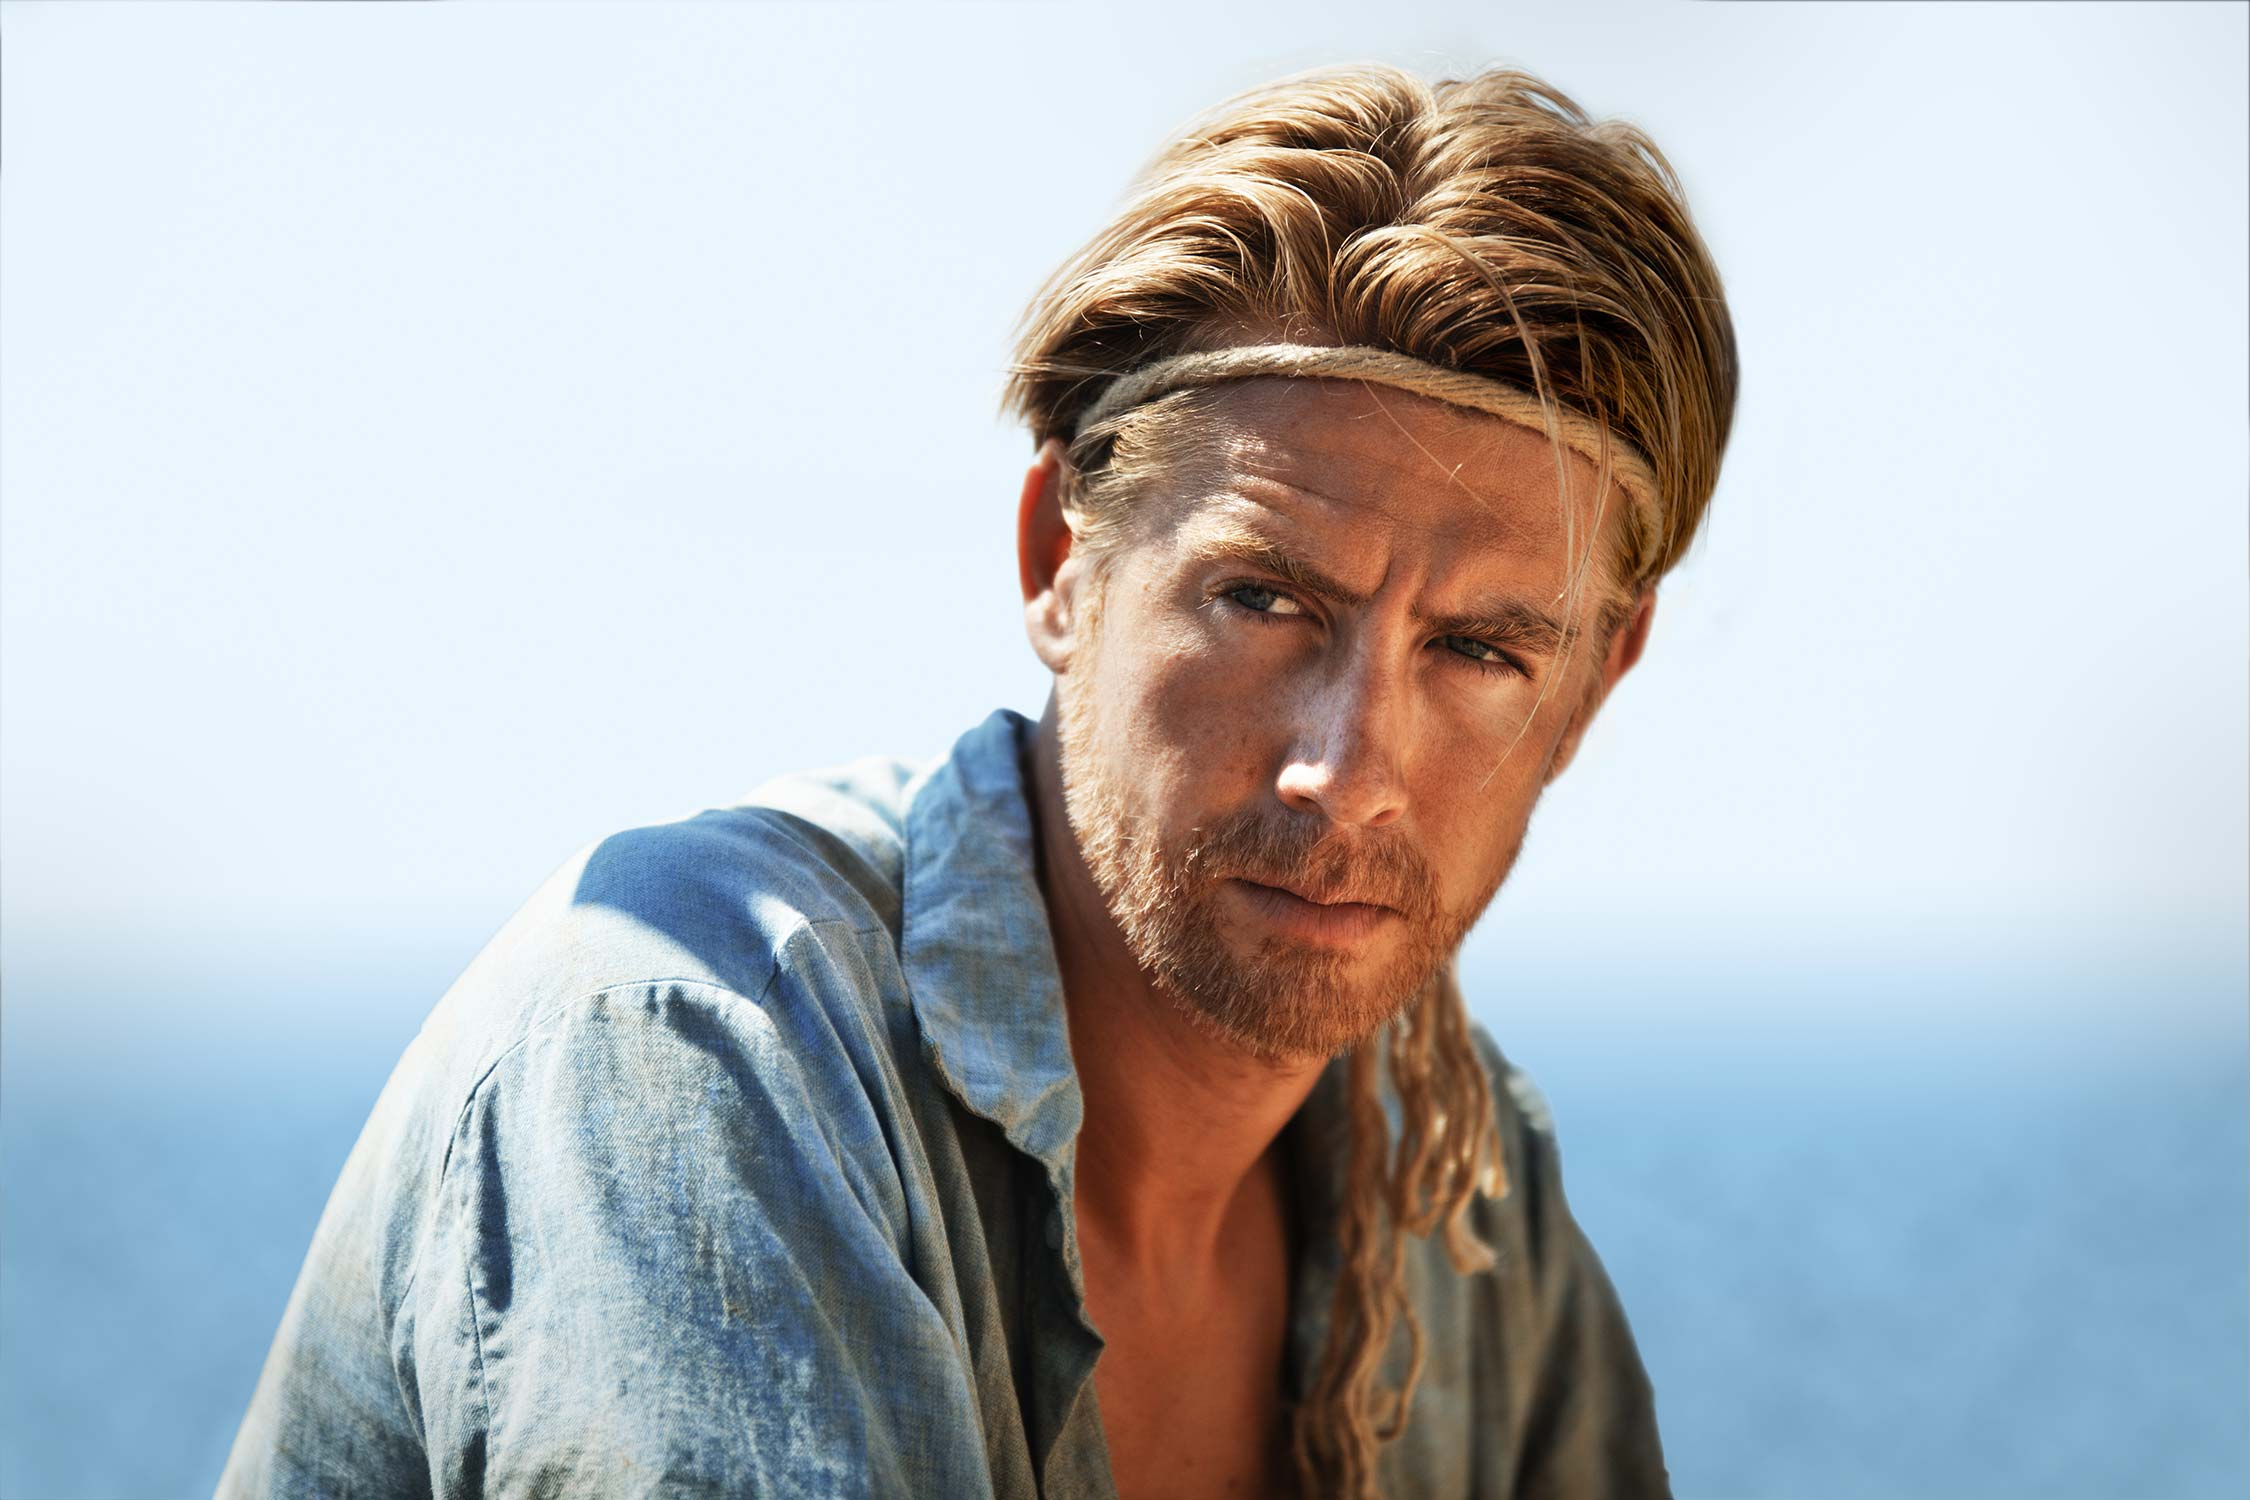 Pal Hagen as Thor Heyerdahl